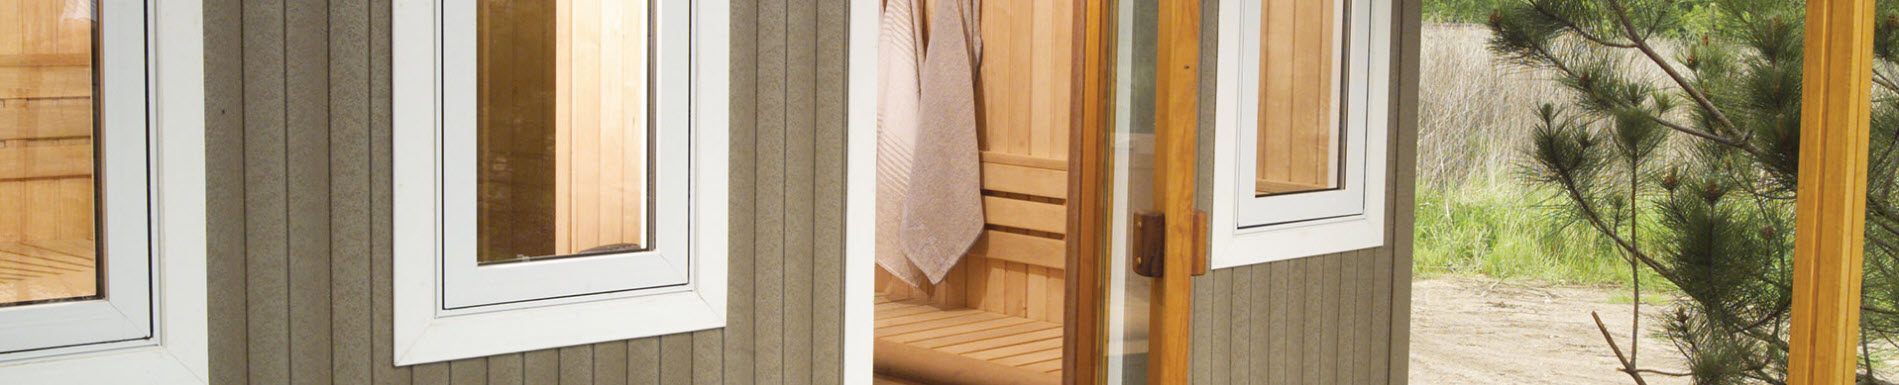 3 Ways Sauna Soaking Can Benefit Your Heart, Infrared Saunas Store Plymouth